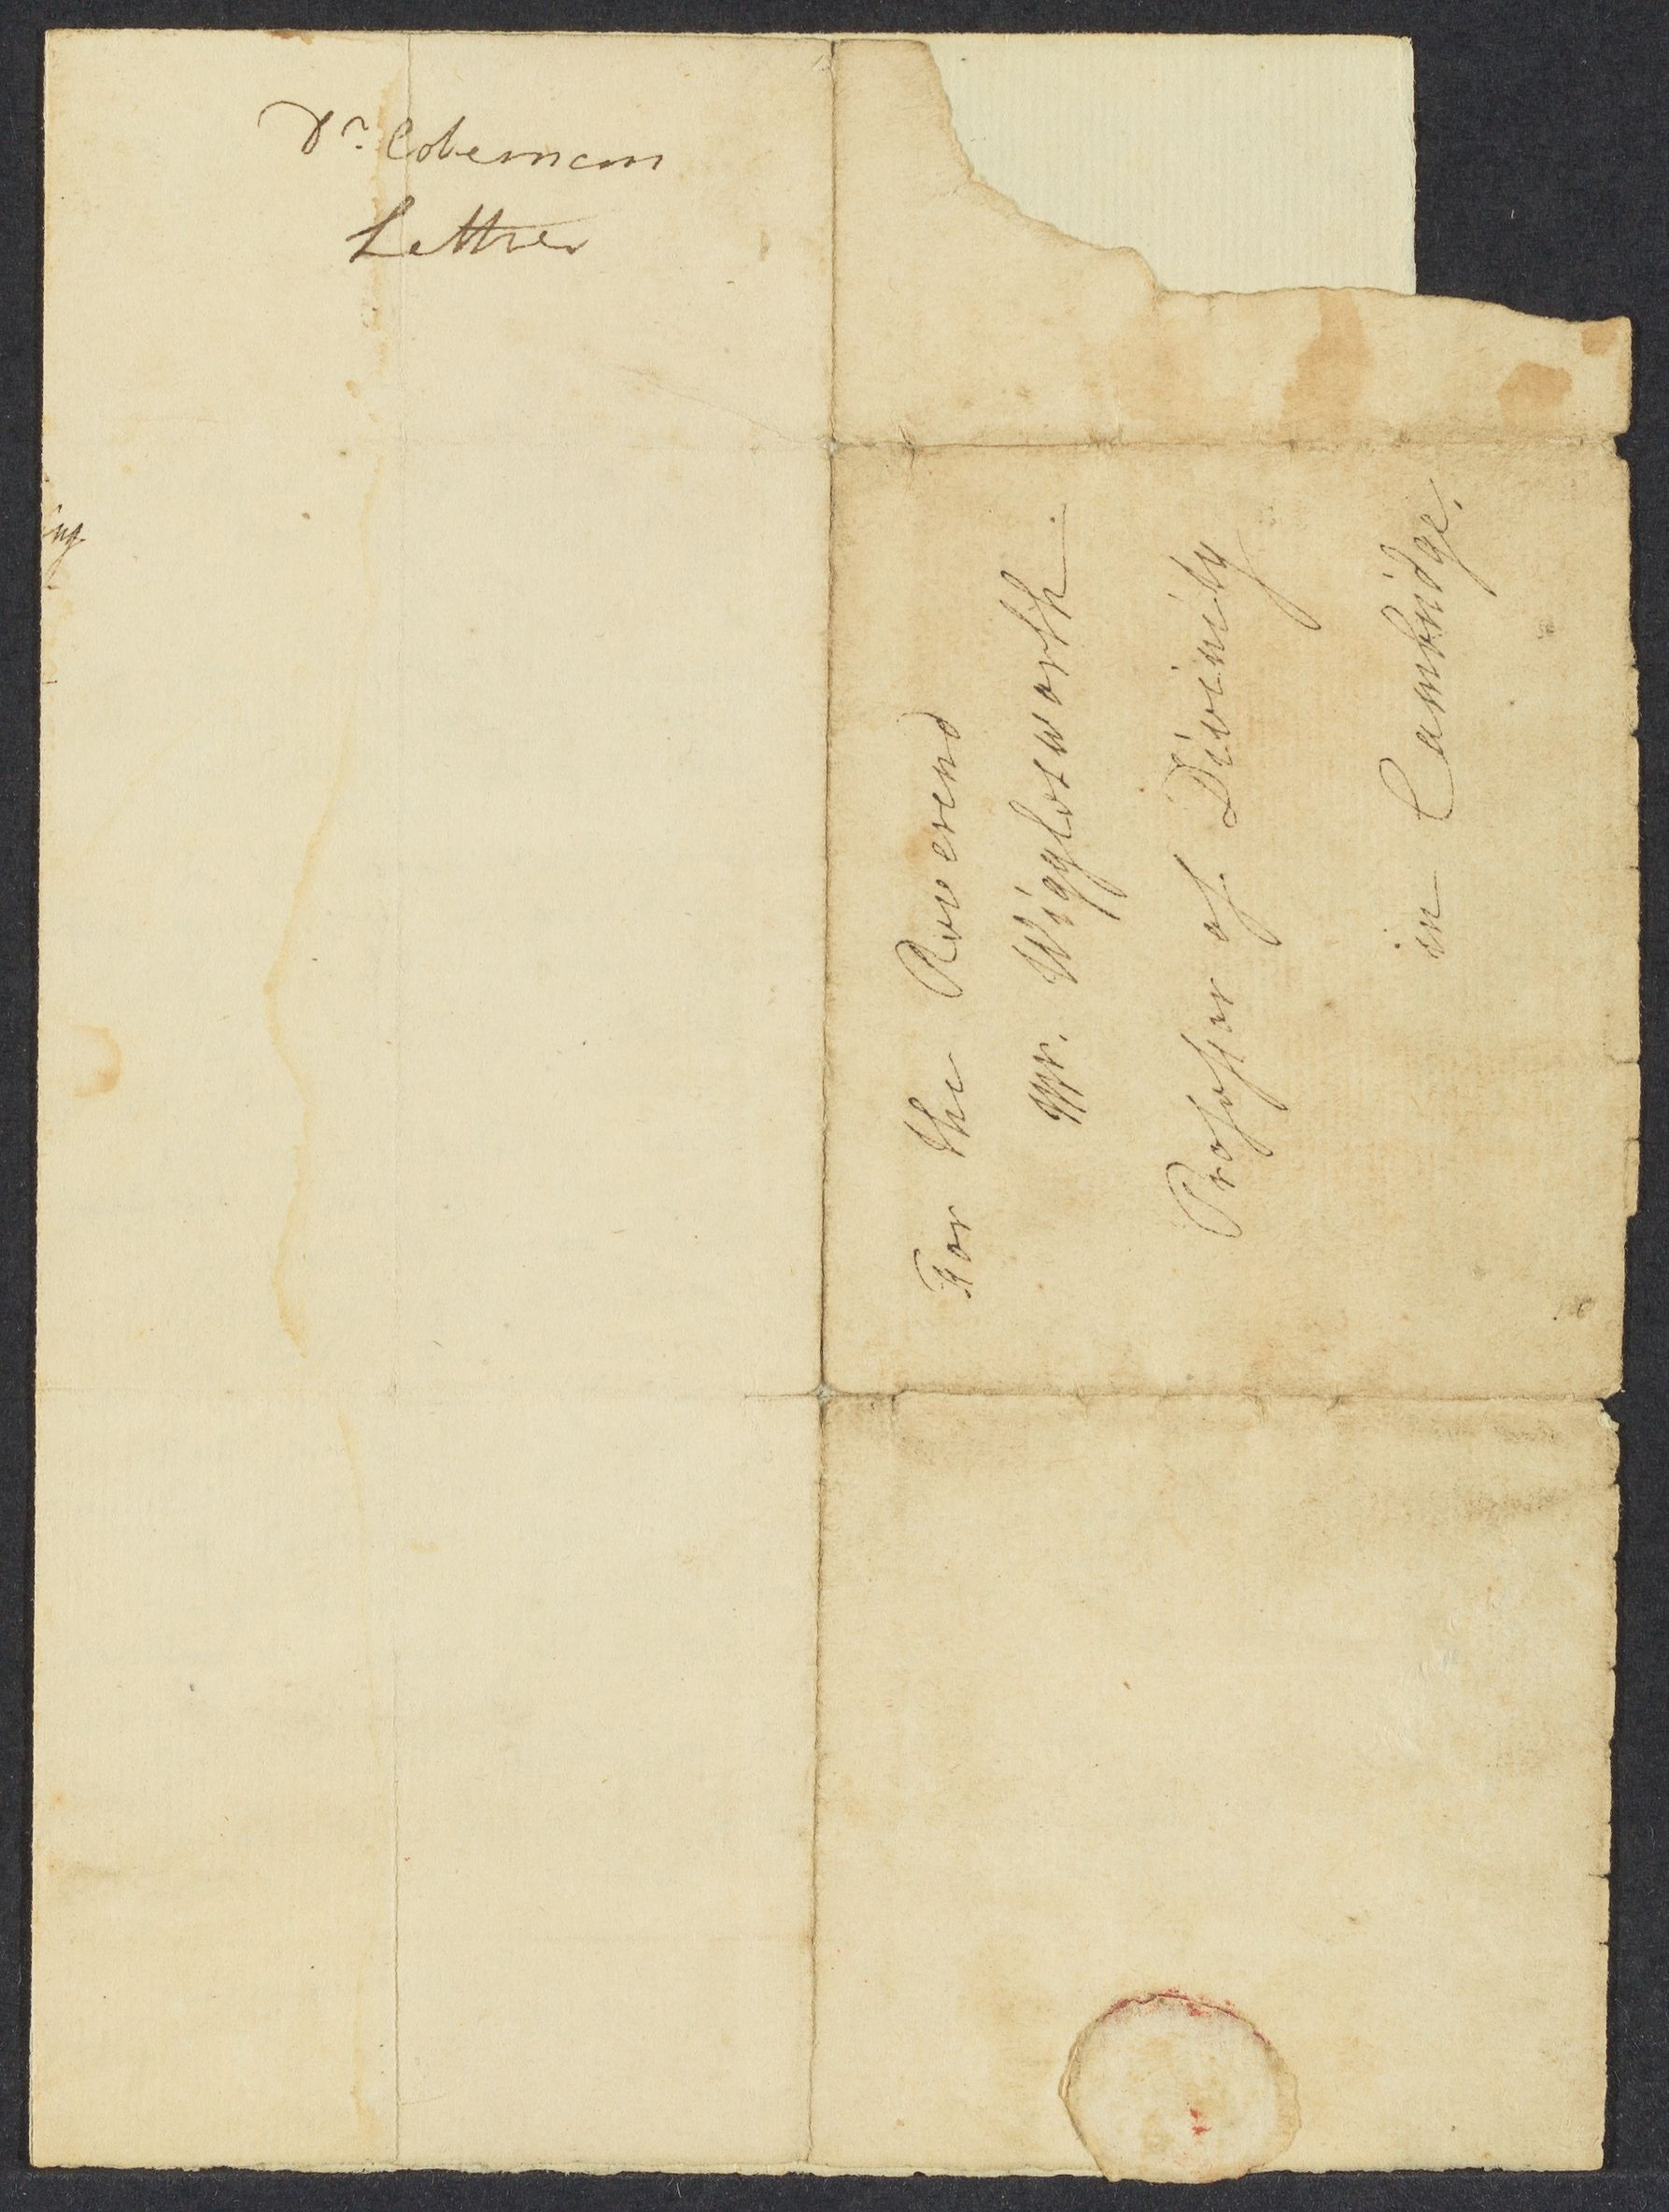 Letter from Benjamin Colman to Edward Wigglesworth about John Leverett, 1728 March 4